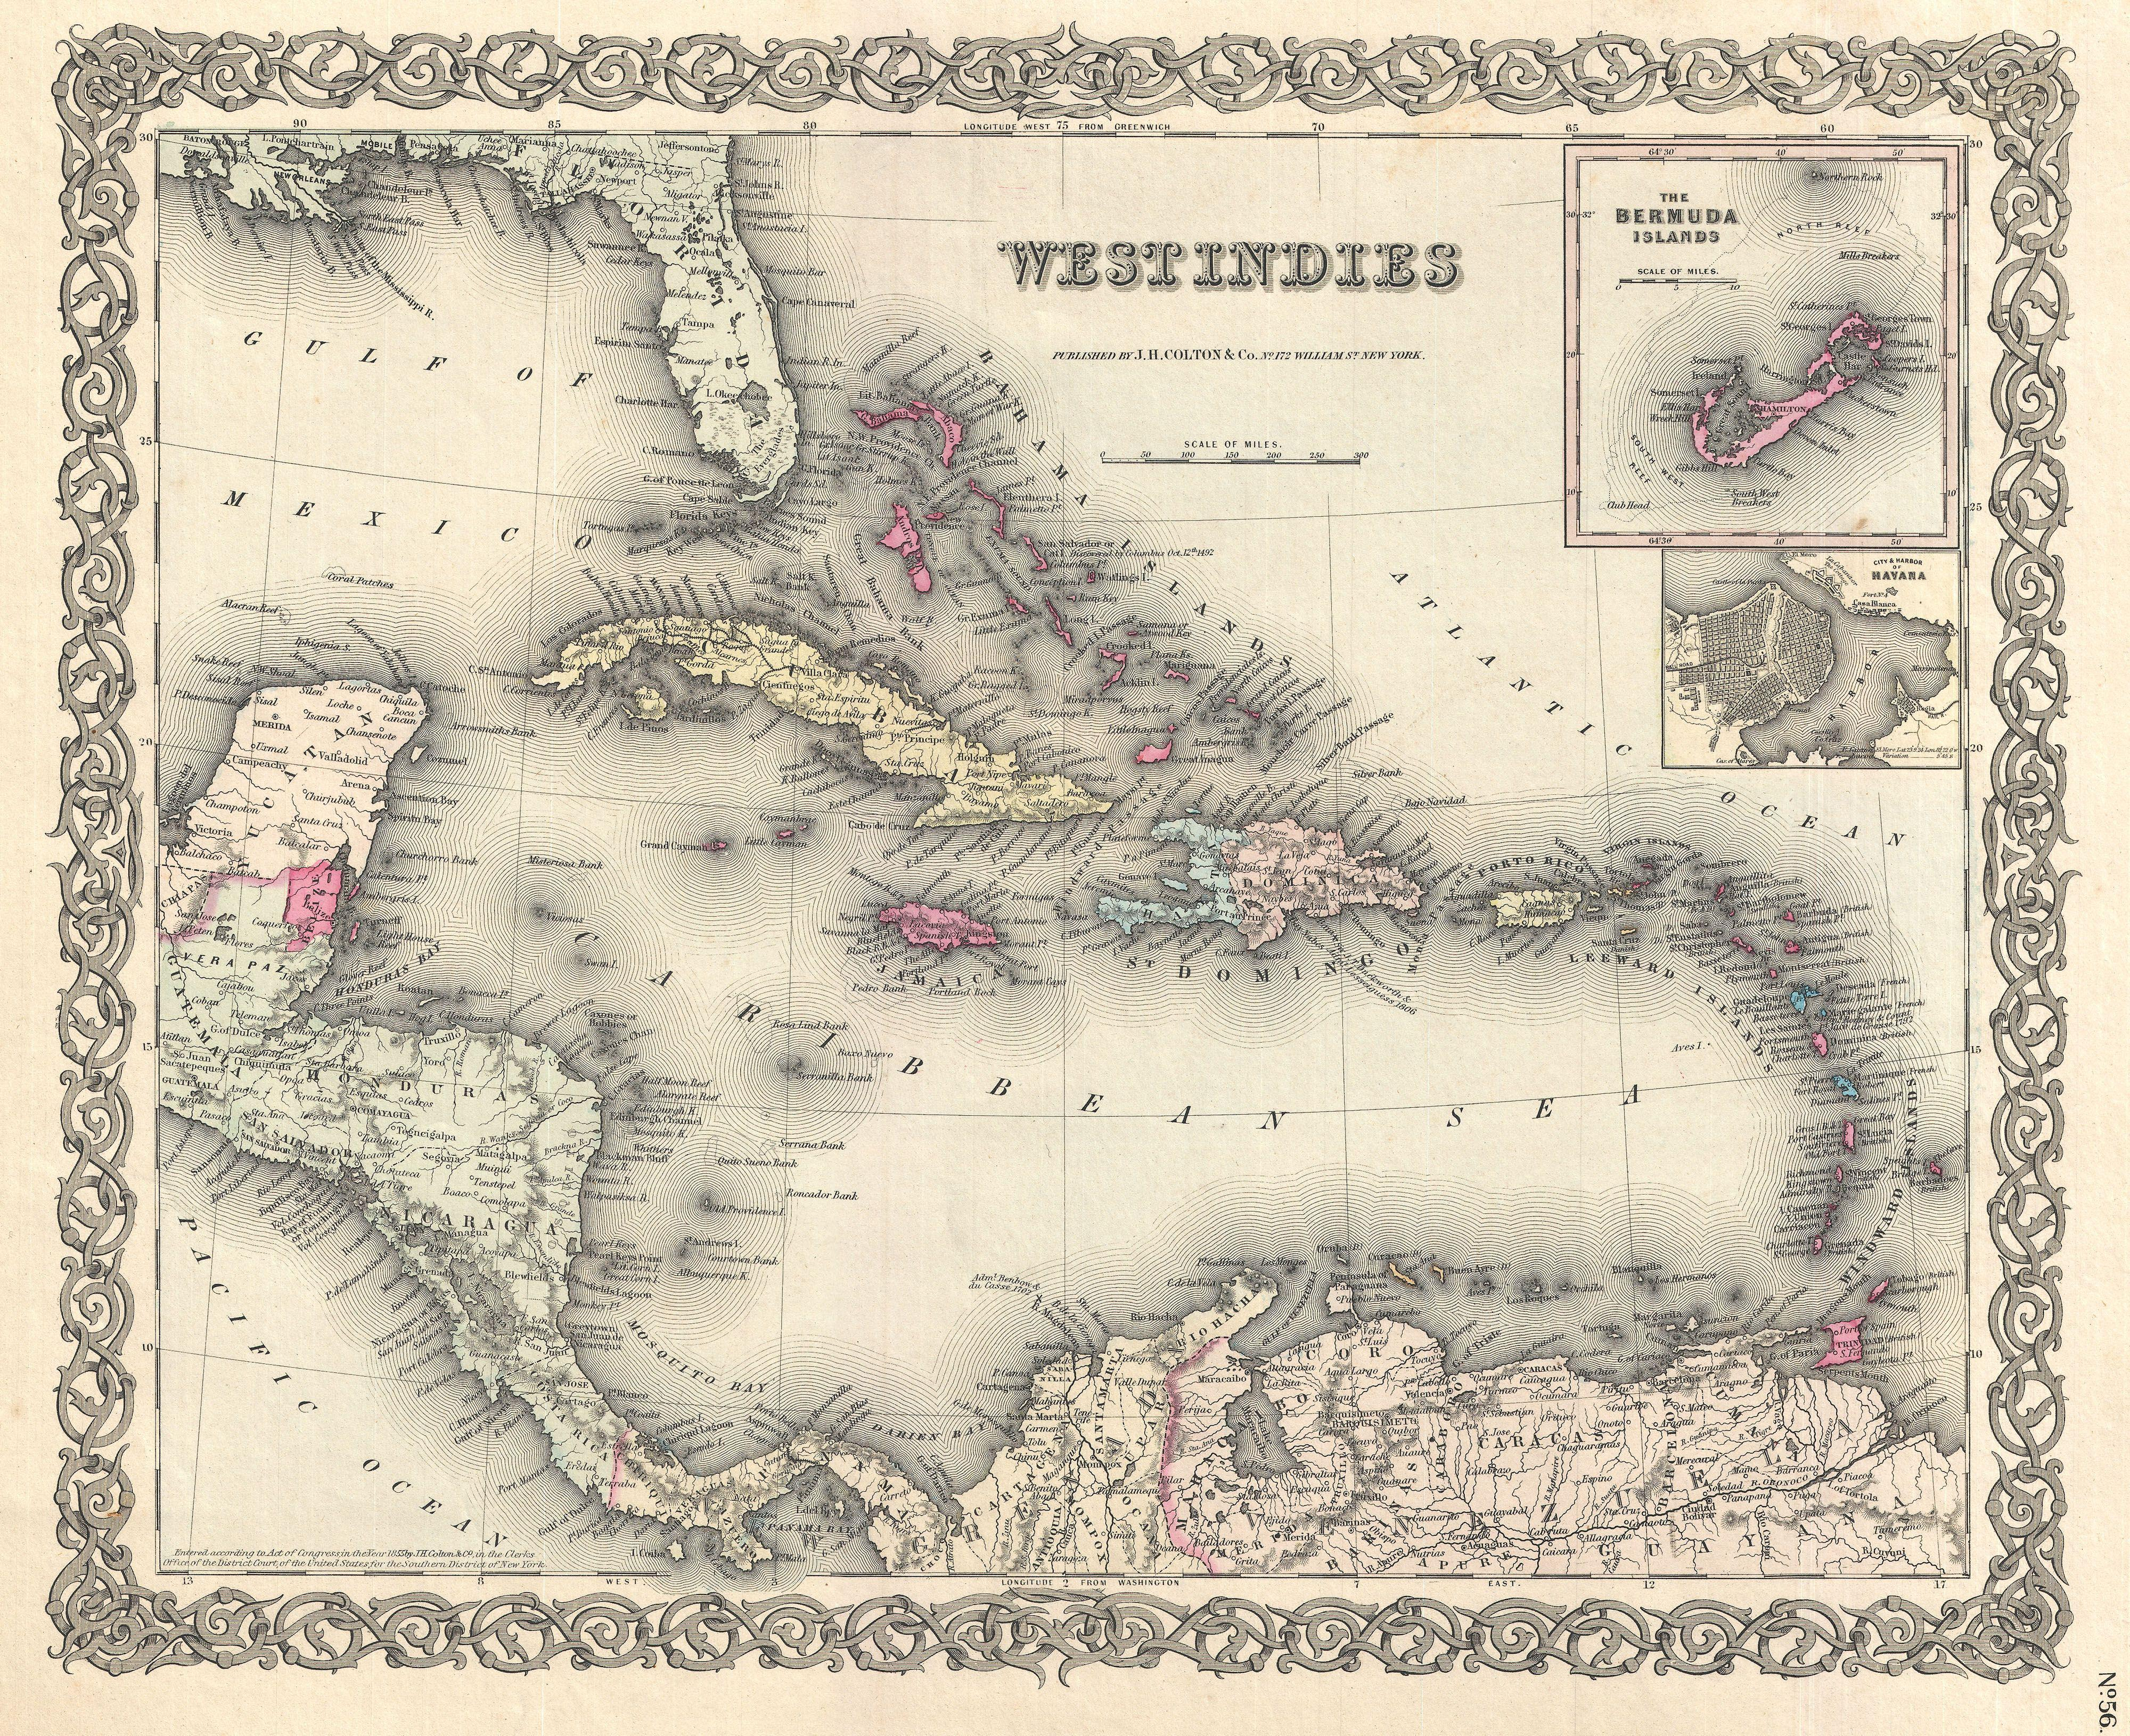 1855 Colton Map of the West Indies